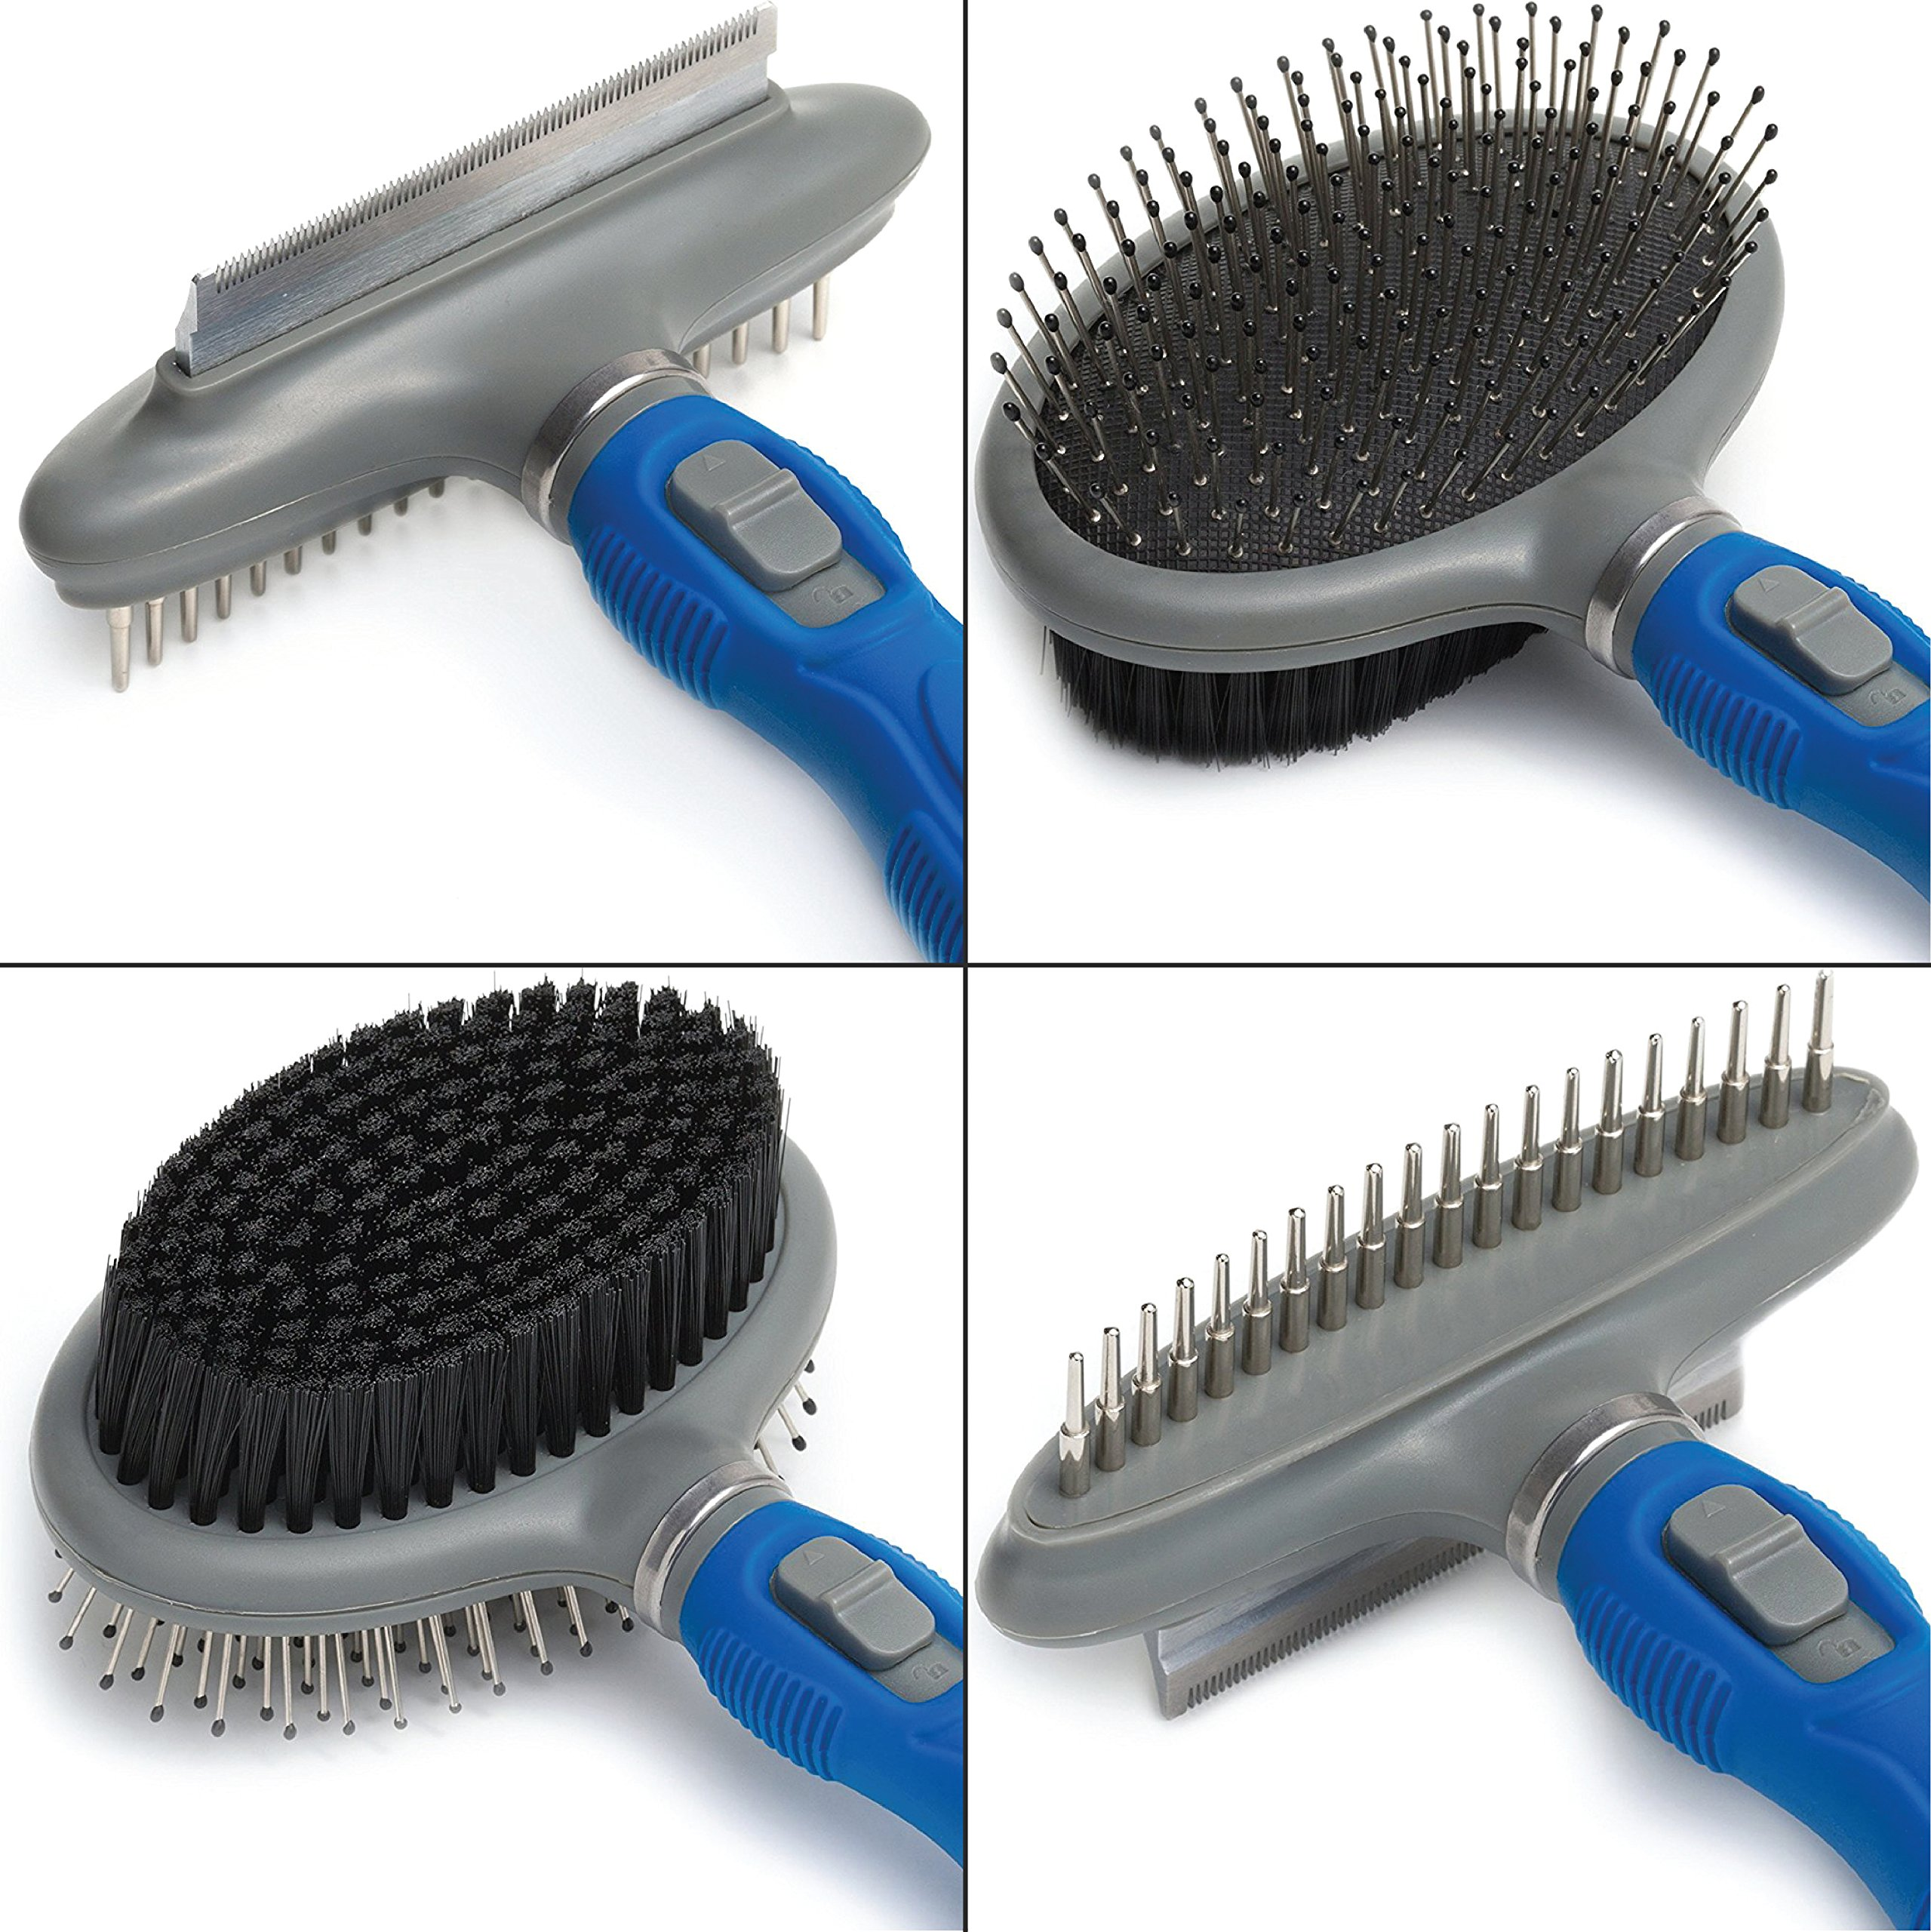 Friends Forever Dual Side 2 in 1 Pet Grooming Combo - Deshedding, Pin Bristle Dog Brush + Undercoat Rake & Comb for Dogs and Cat, Pet Supplies Tool Kit